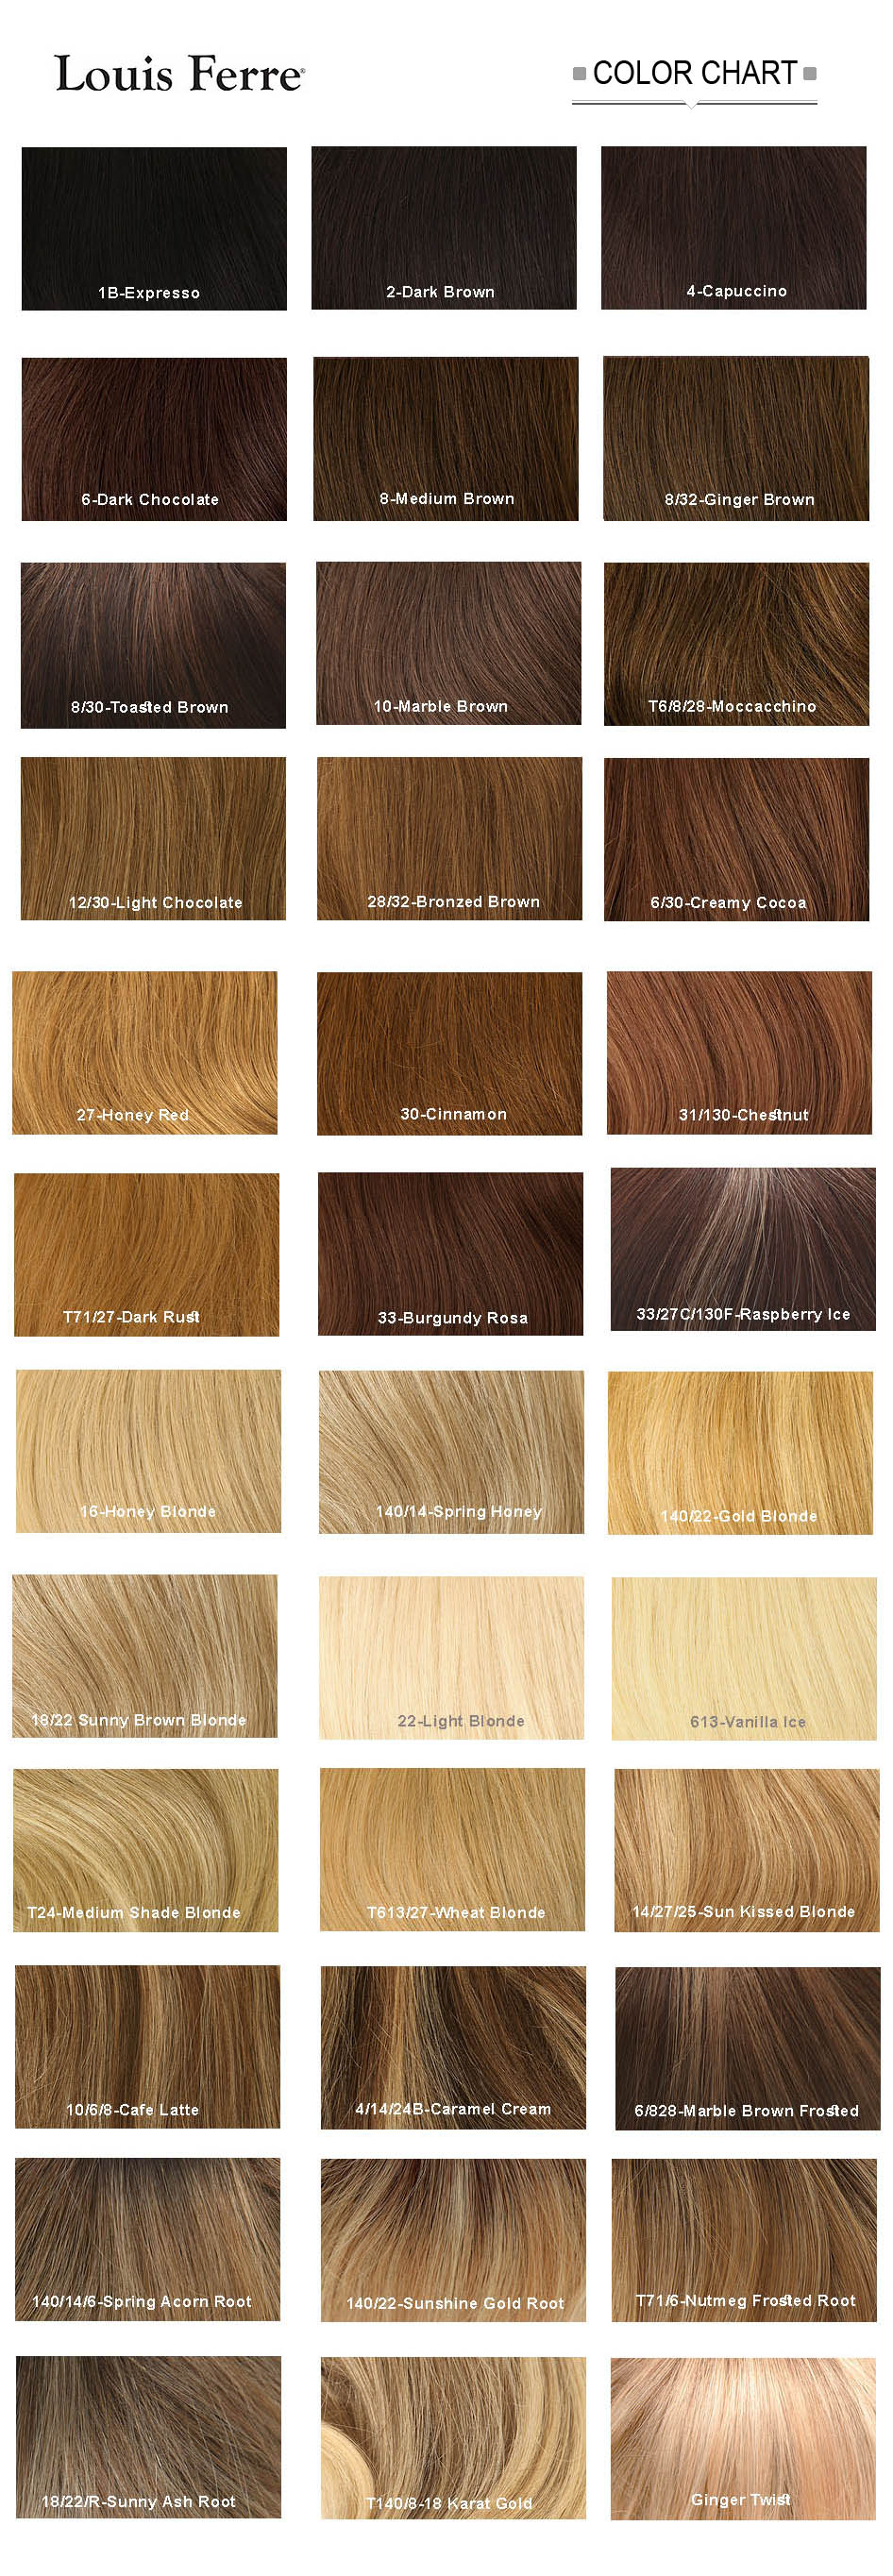 louis ferre hair color chart